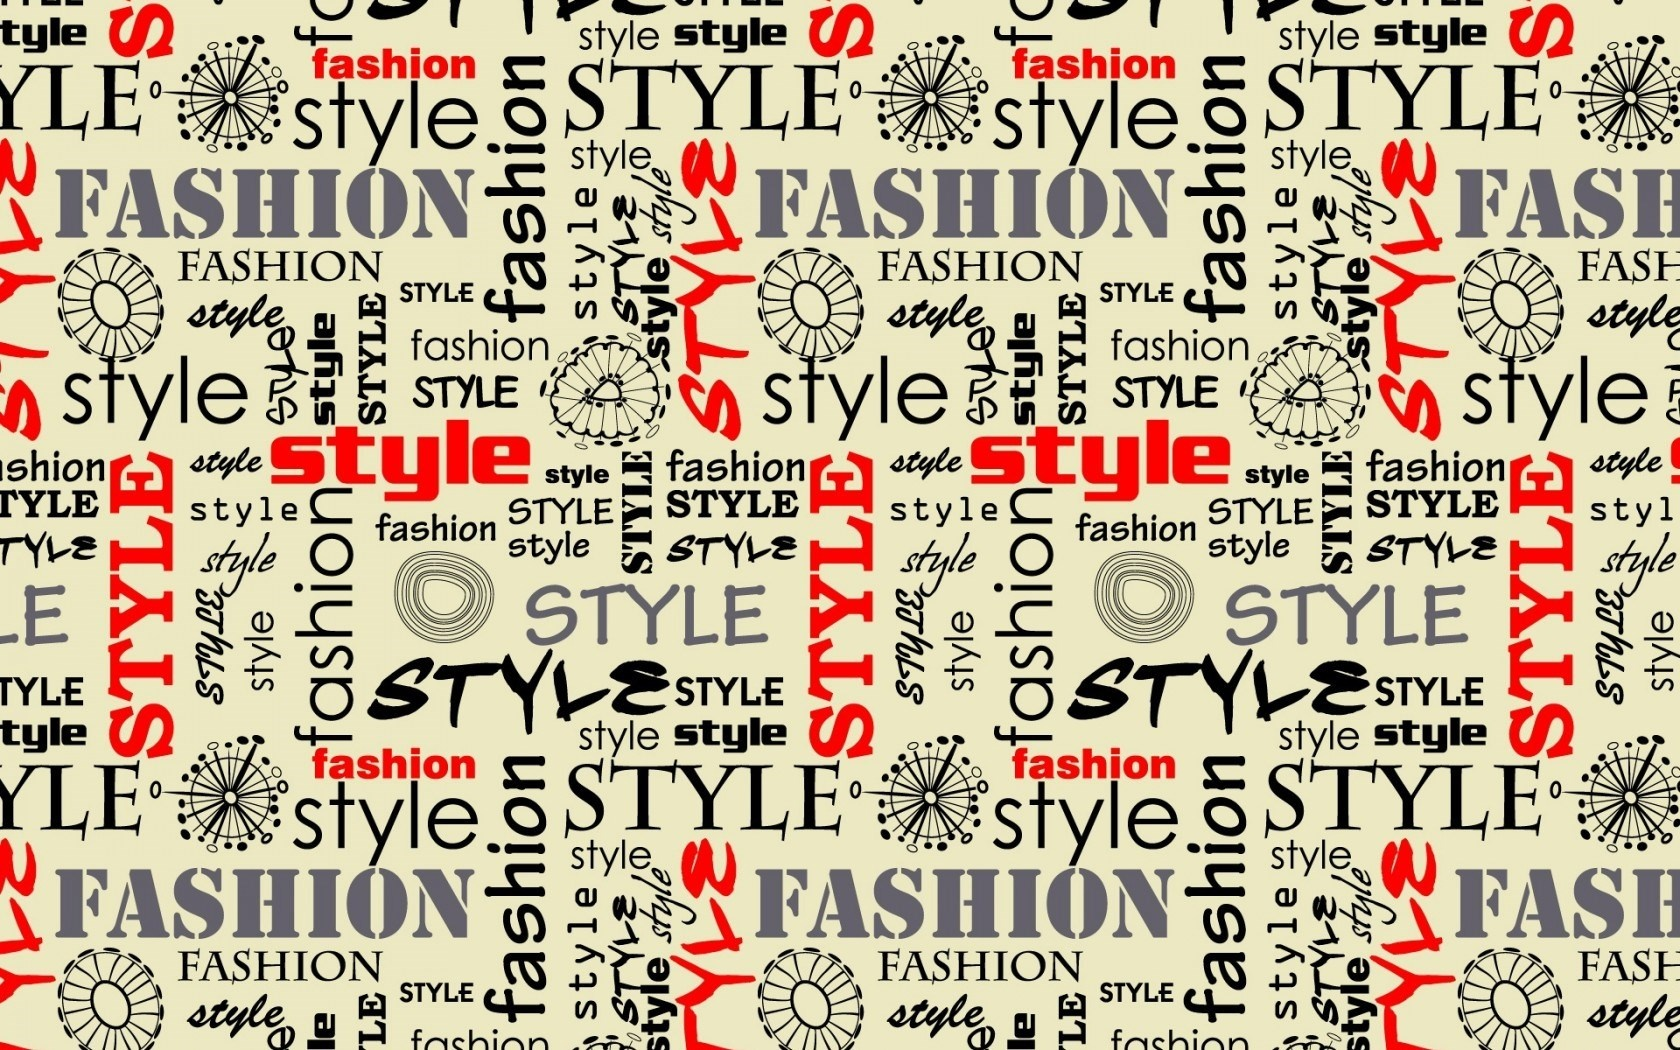 fashion style words letters